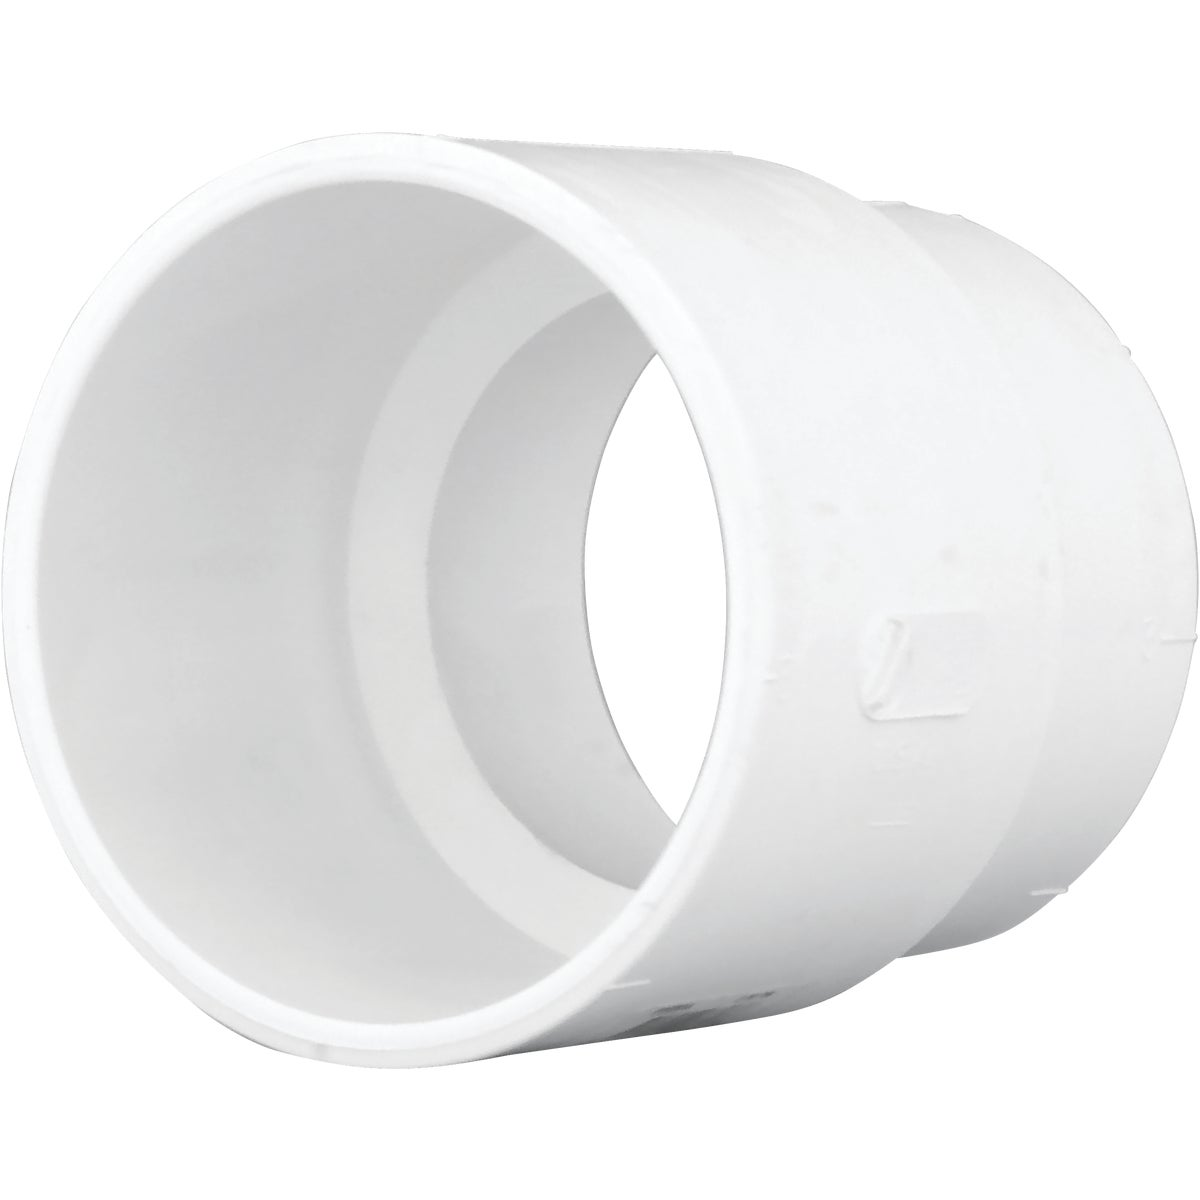 "3"" DWV PIPE SP ADAPTER - 71730 by Genova Inc  Pvc Dwv"